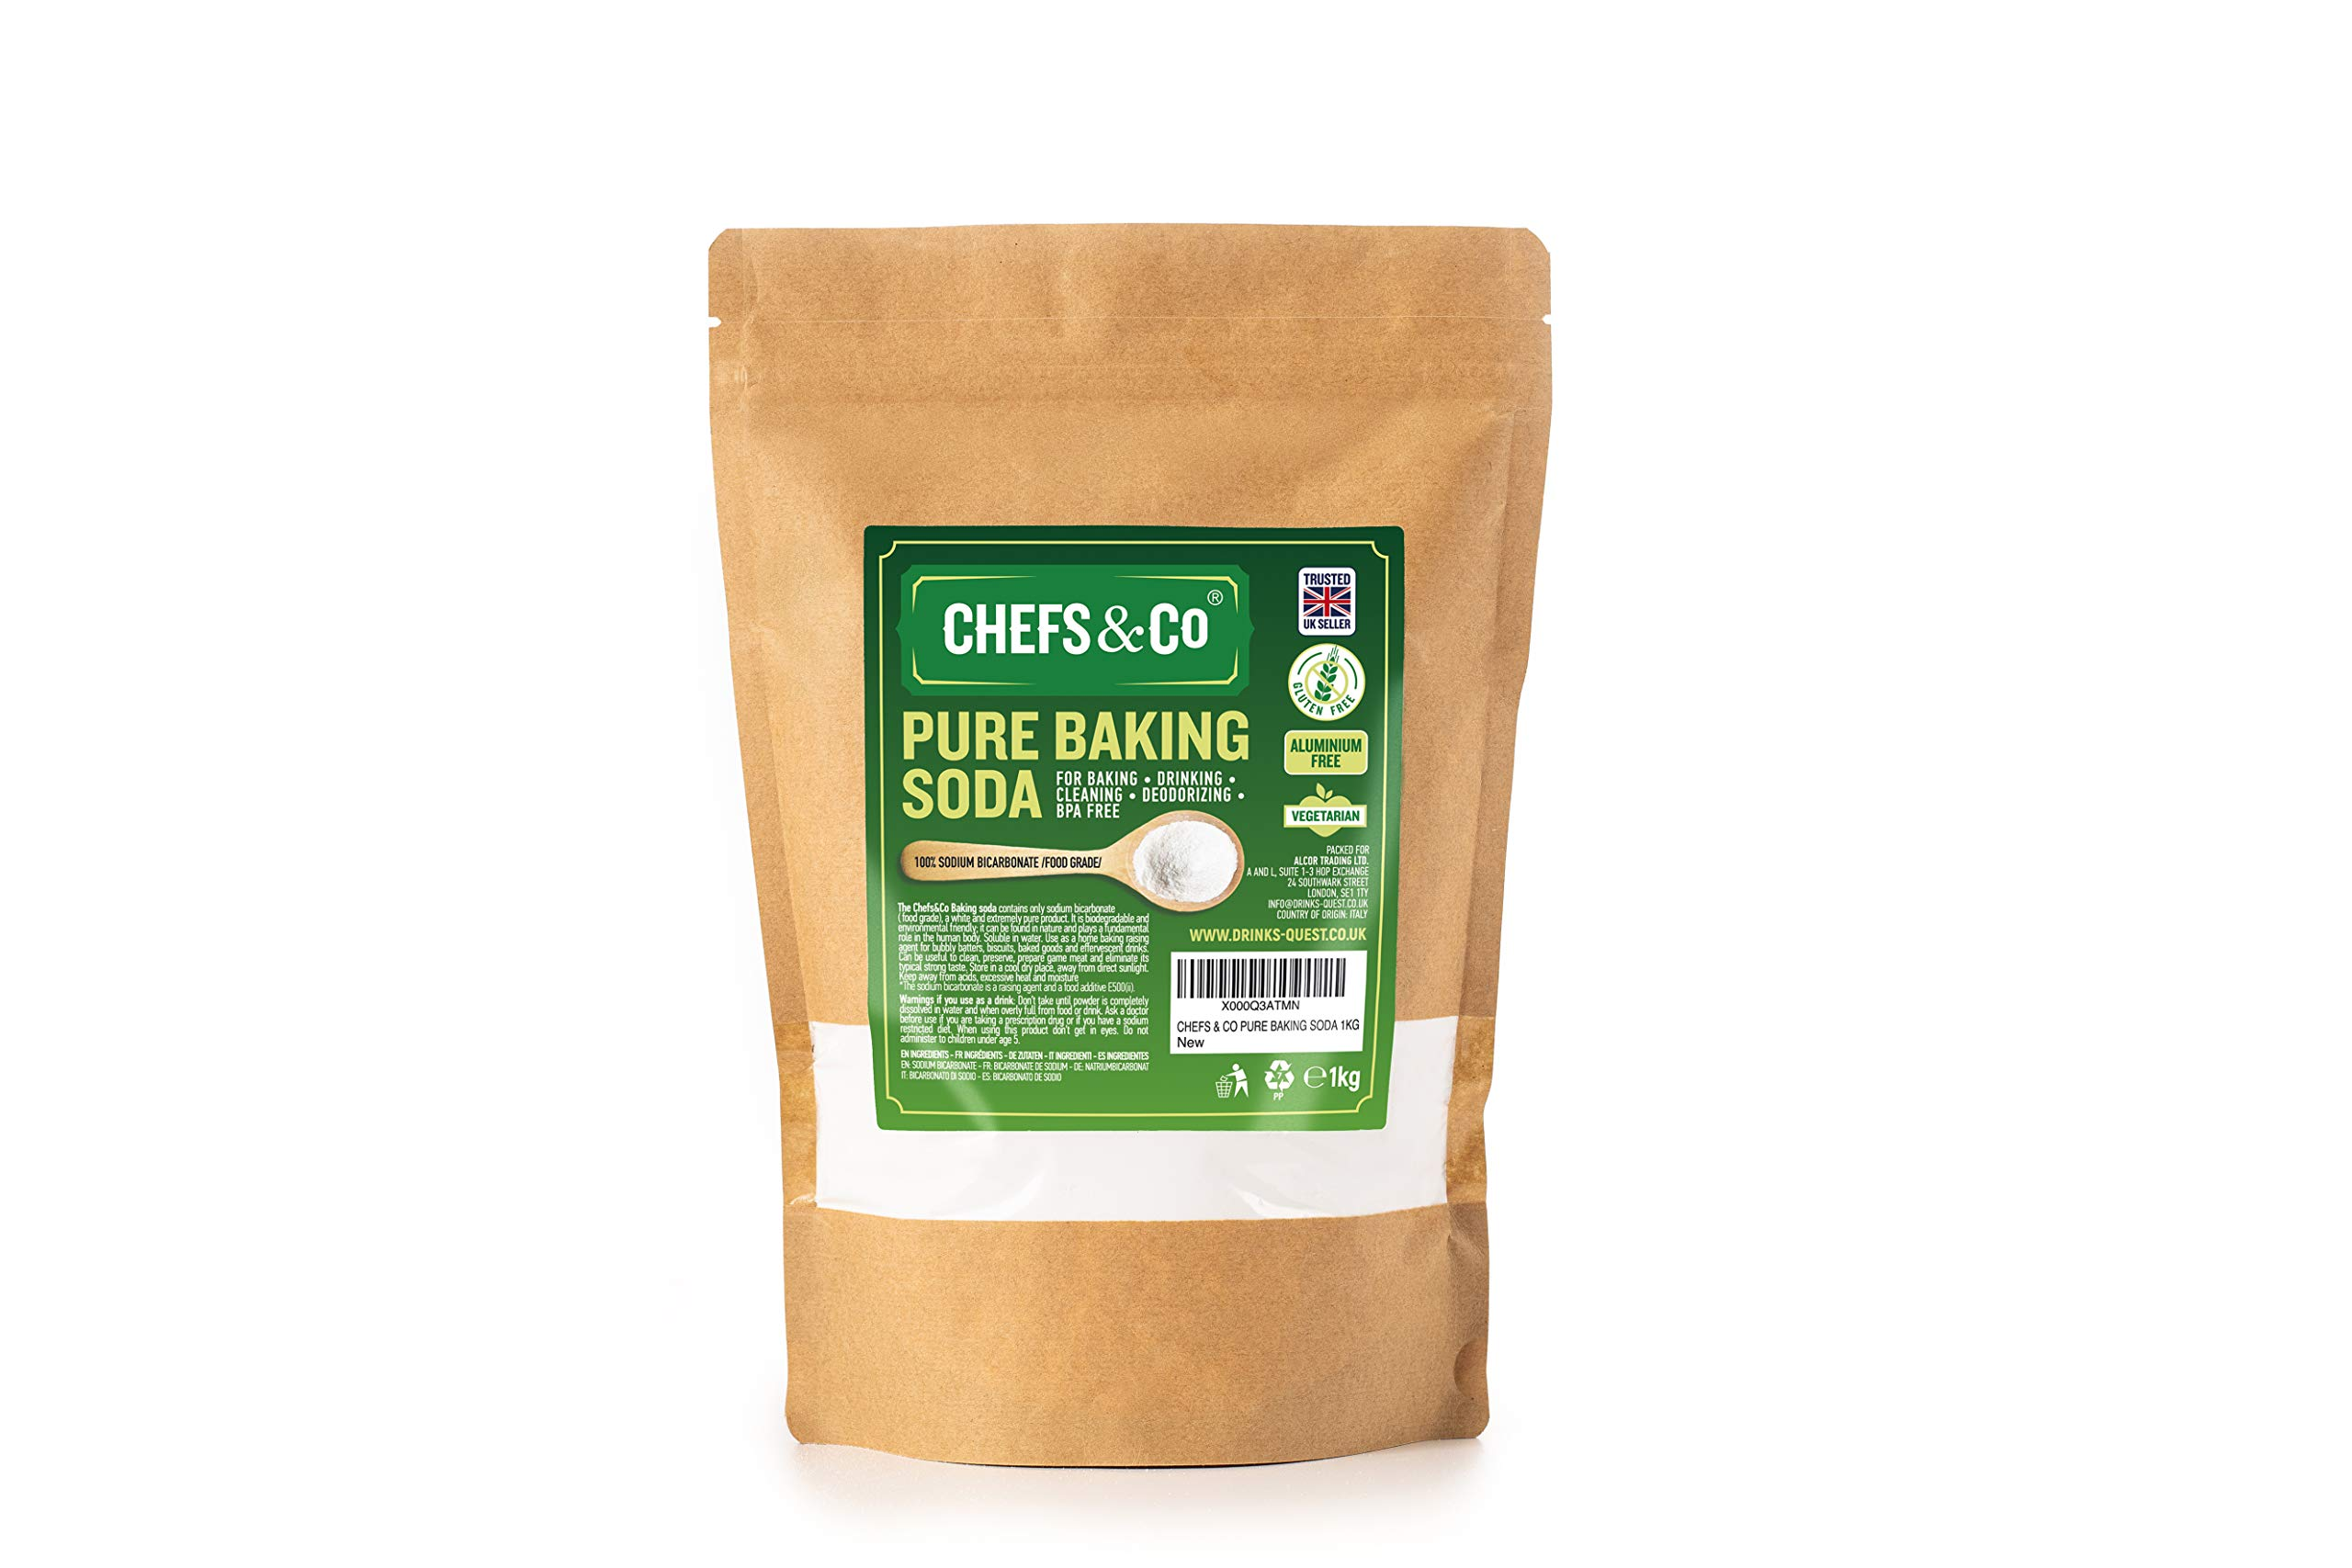 CHEFS & CO Pure Baking SODA (1KG) | 100% Sodium Bicarbonate | for Baking | for Drinking | Aluminium Free | BPA Free | Raising Agent